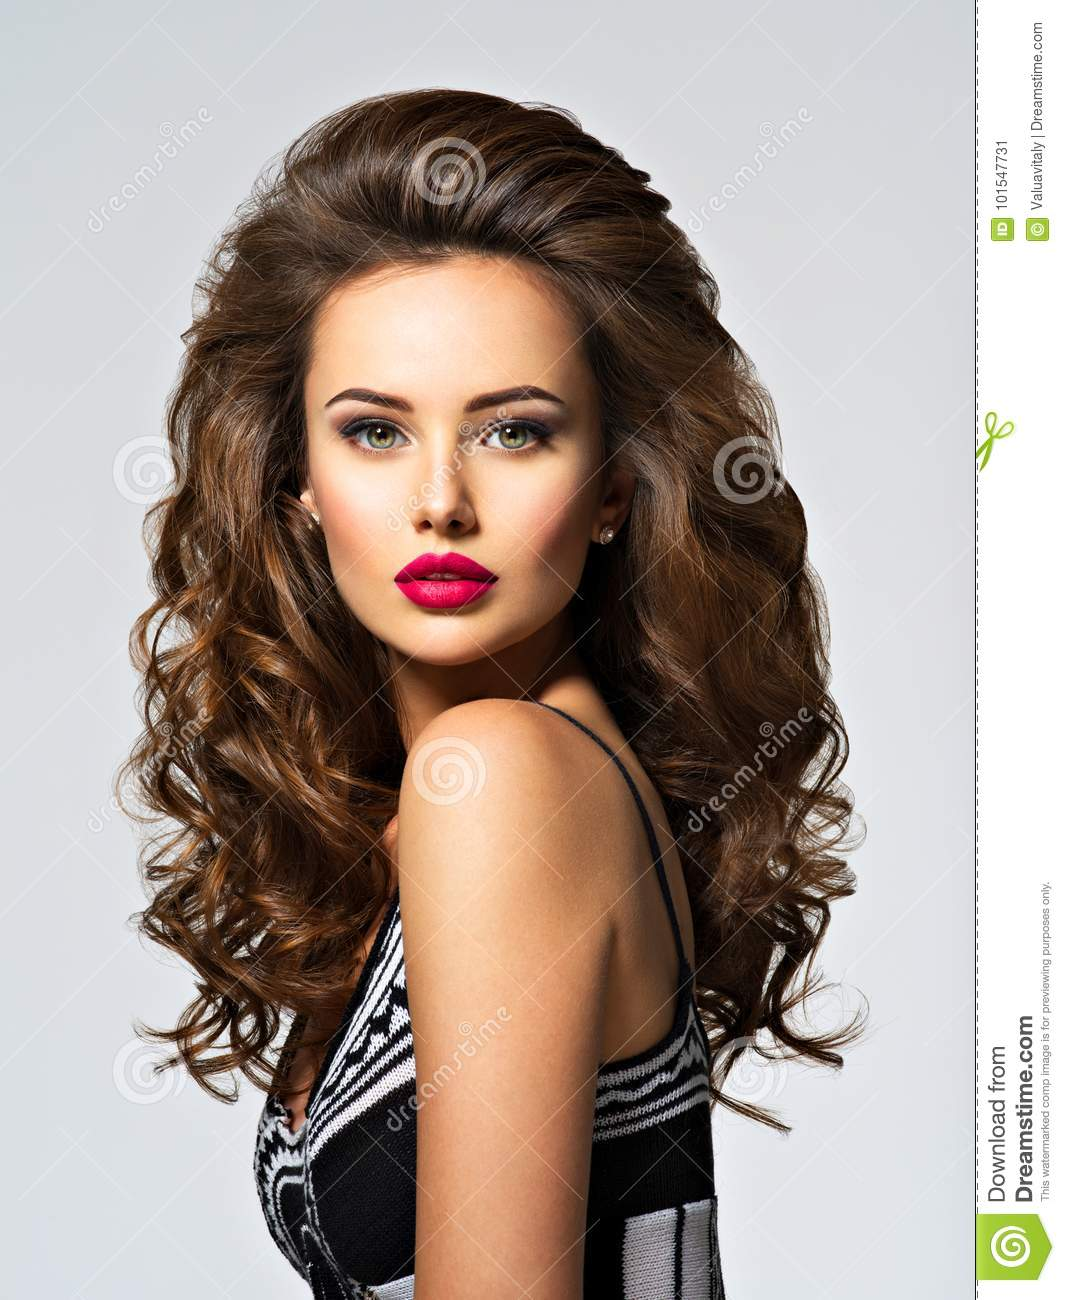 Young pretty woman with long hair